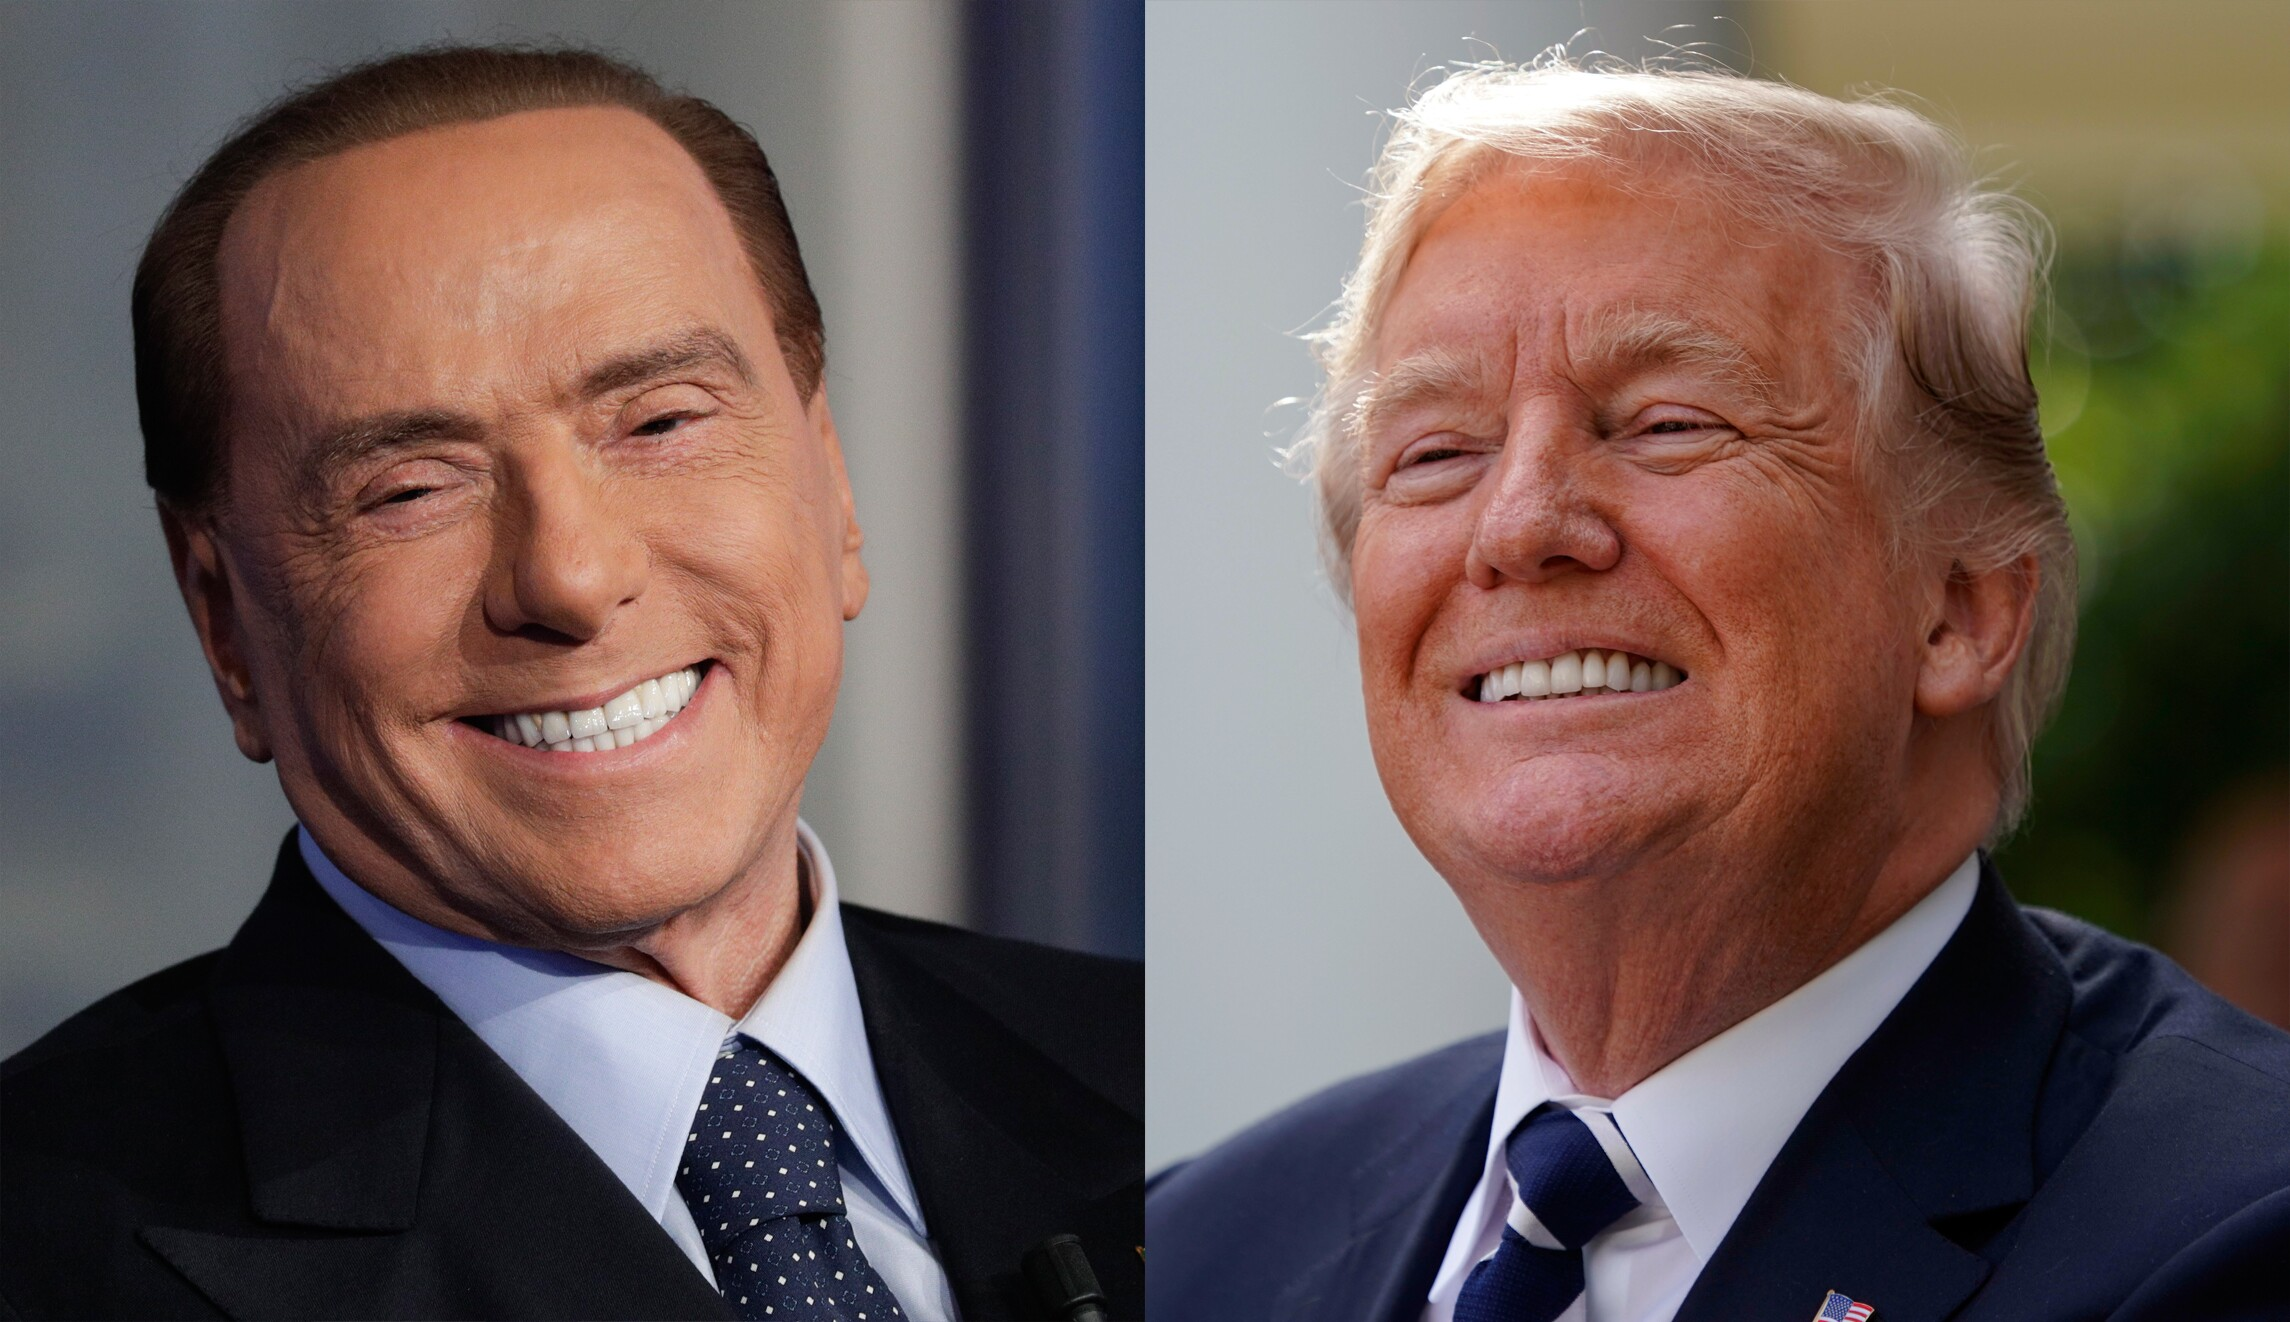 We Might Be Heading For The Trump Berlusconi Show